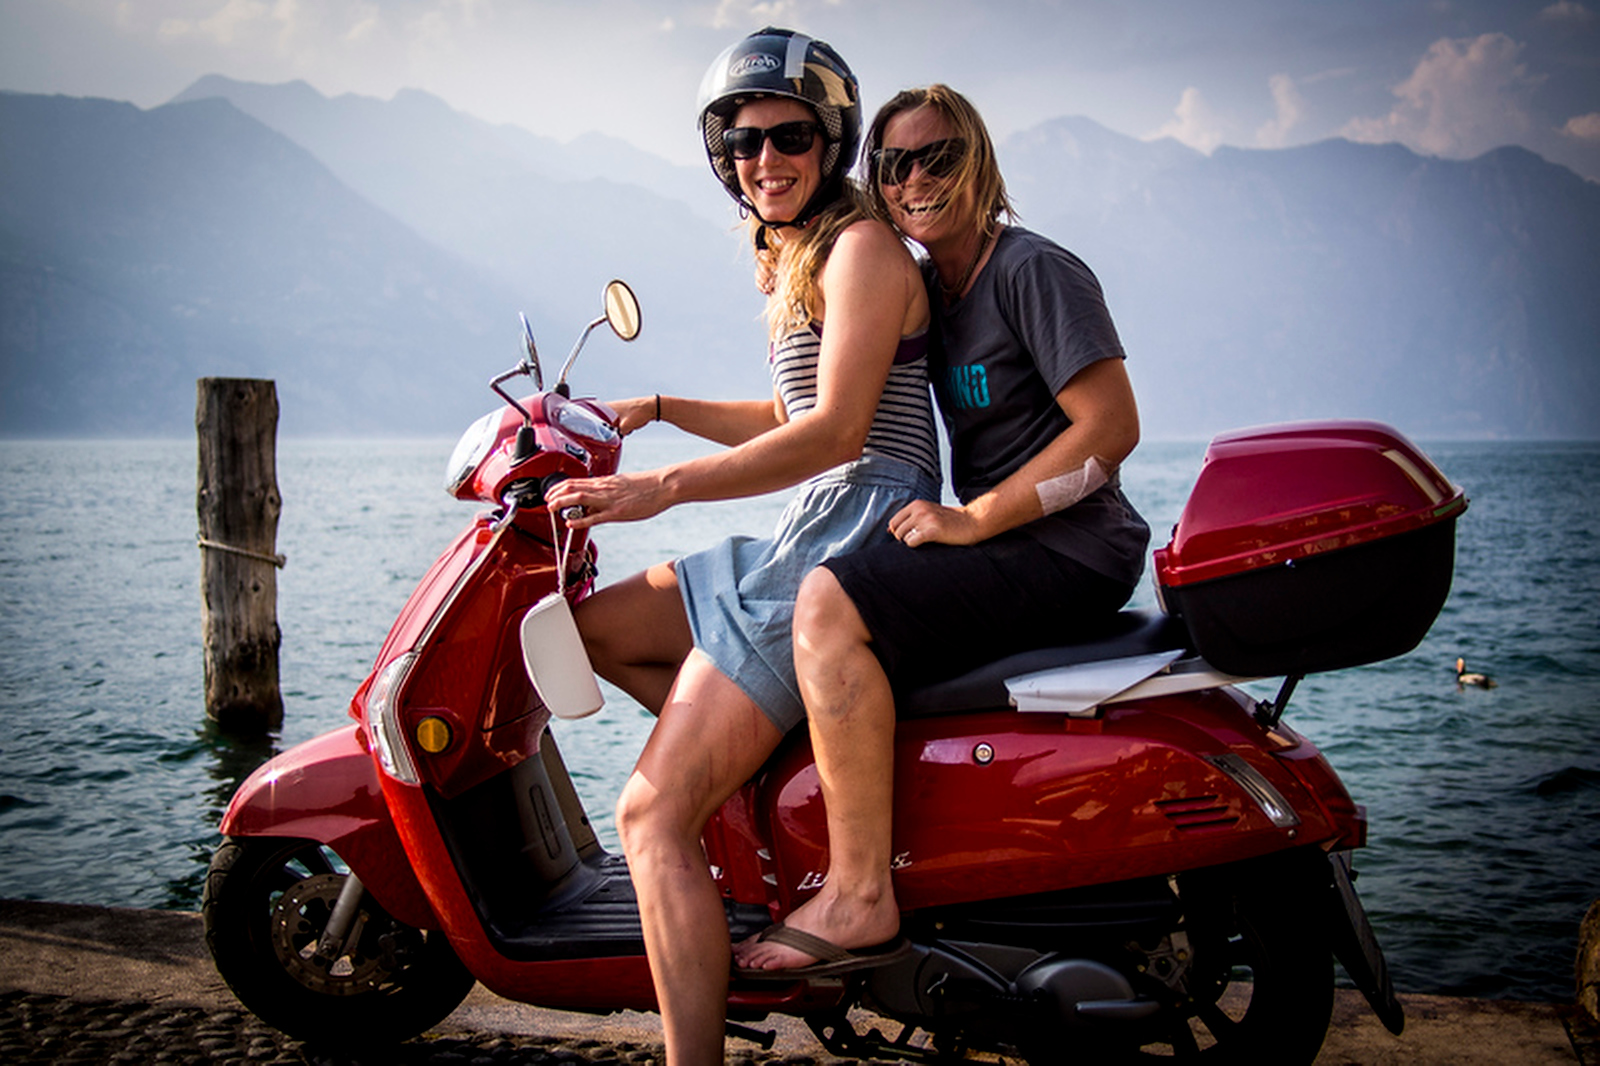 Exchanging bikes for scooters for some lake cruising with Rach.